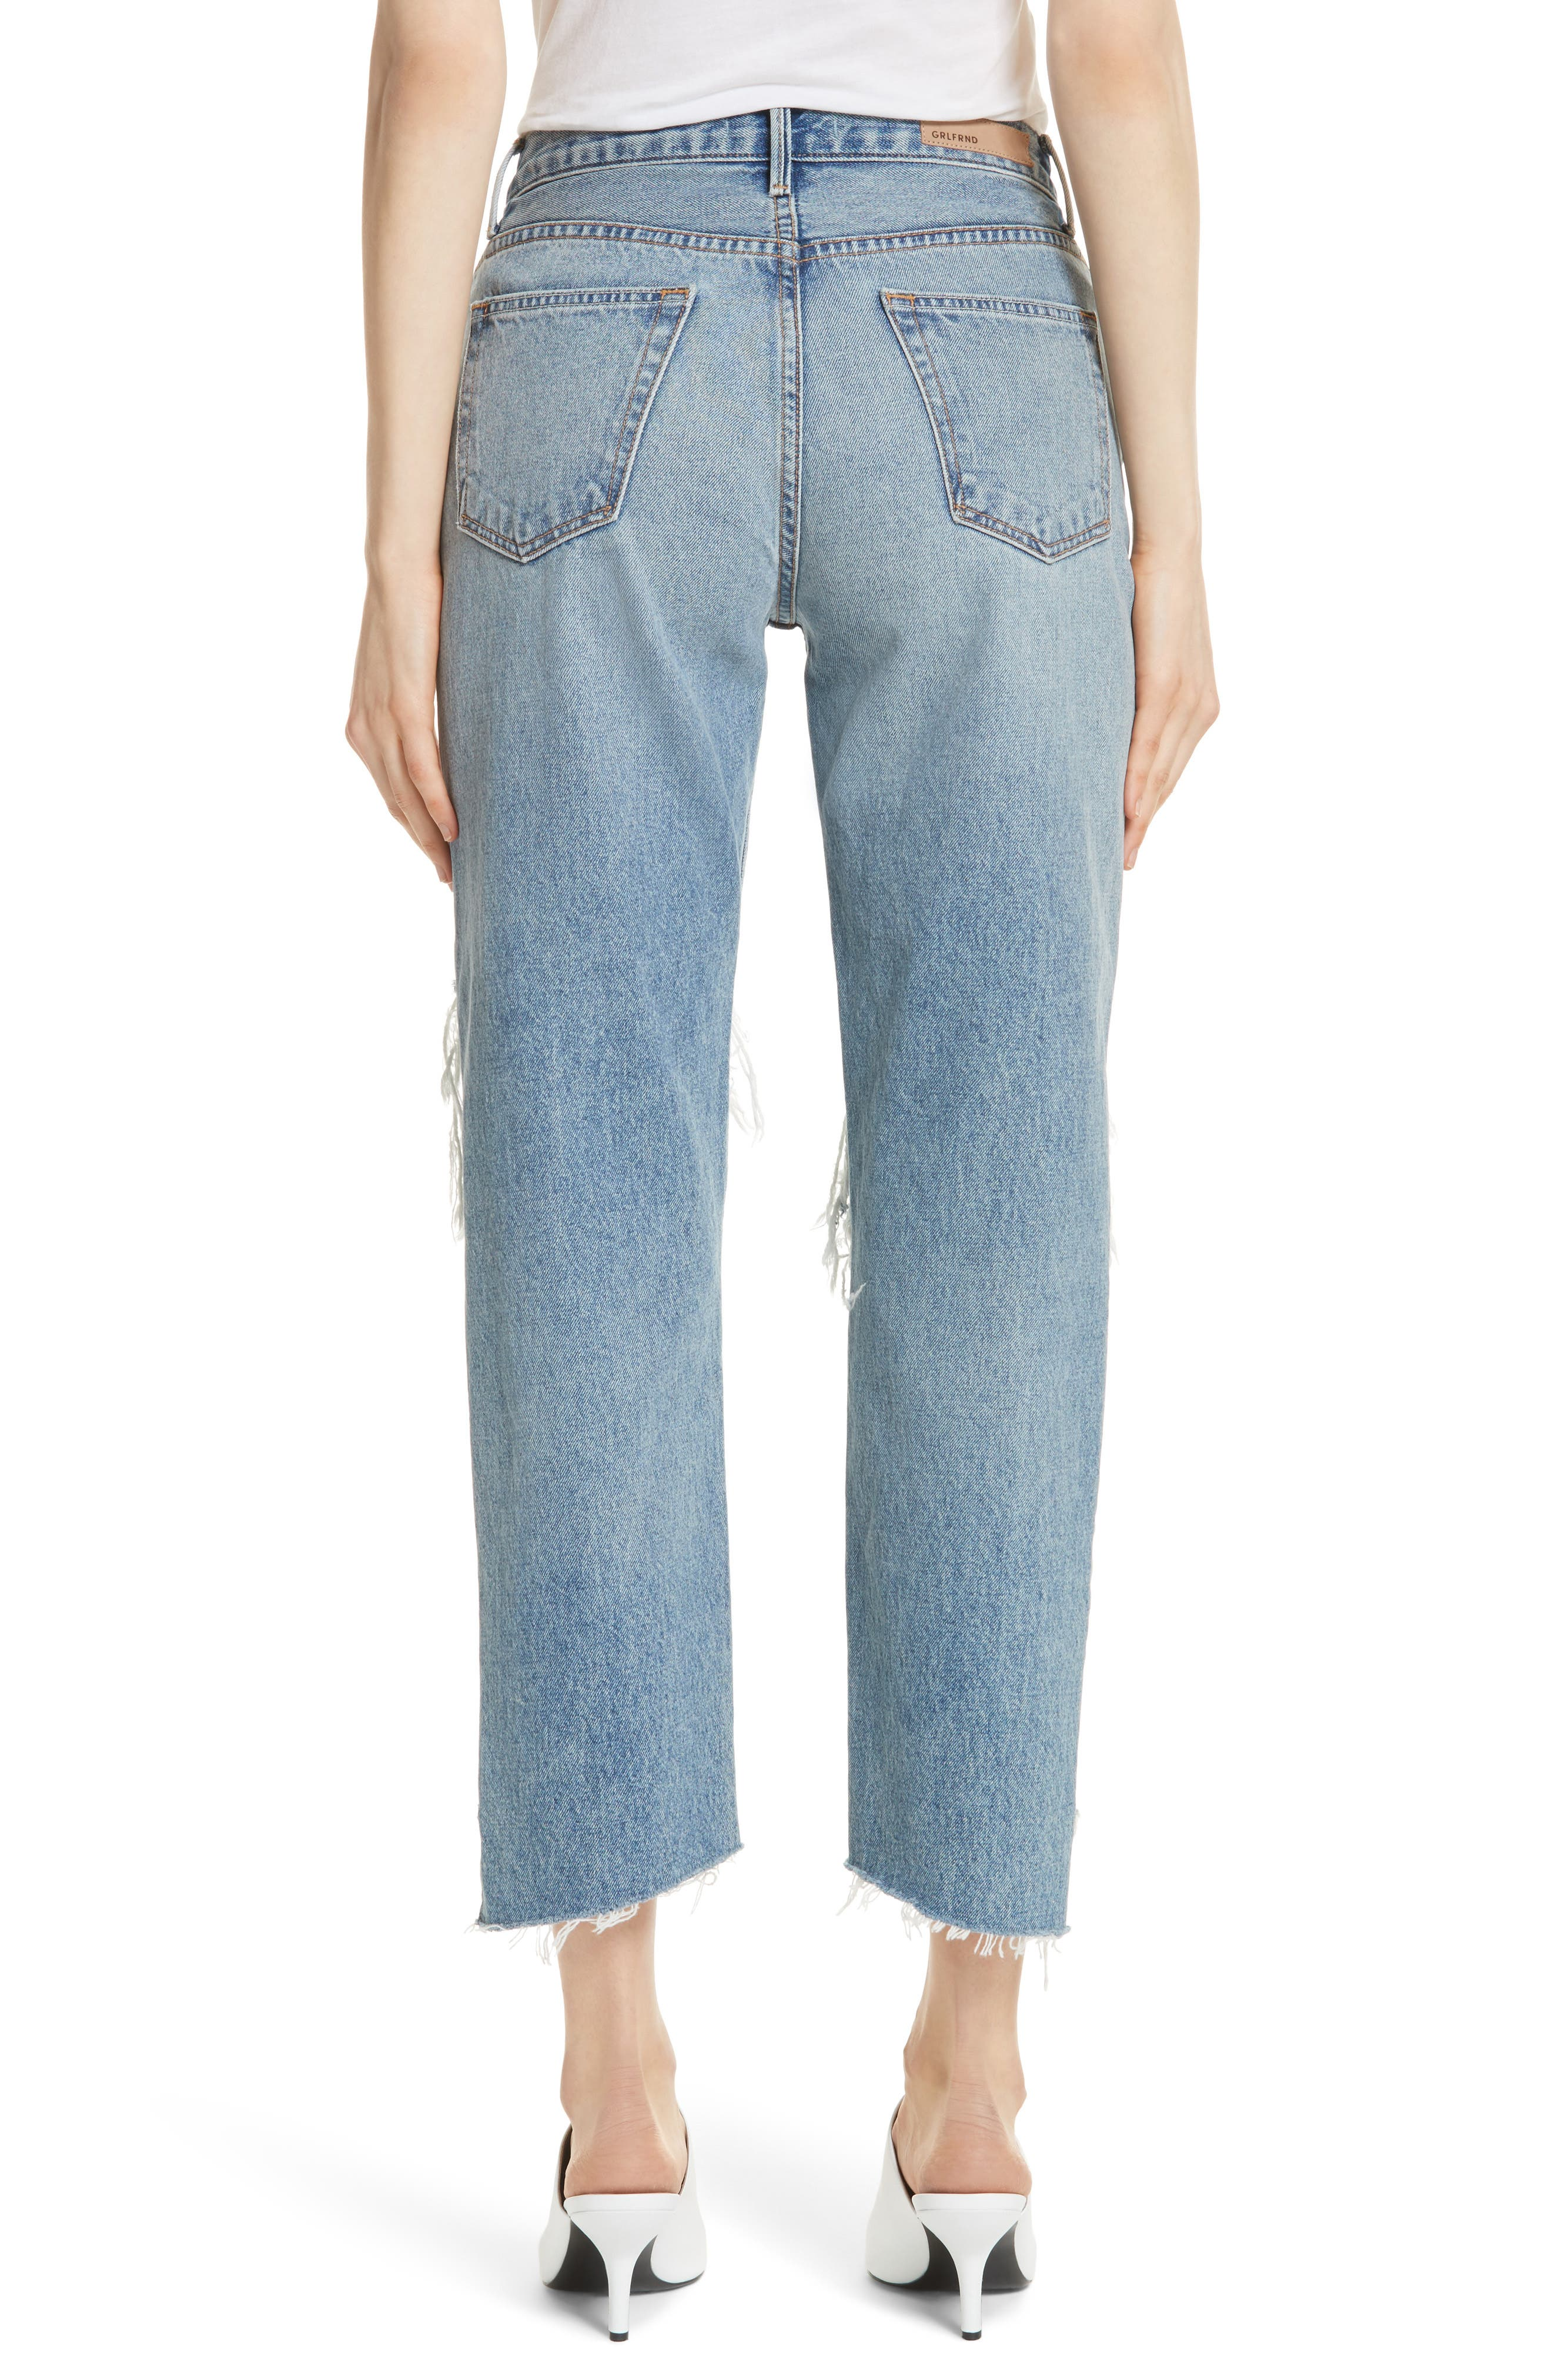 Helena Ripped Rigid High Waist Straight Jeans,                             Alternate thumbnail 2, color,                             487